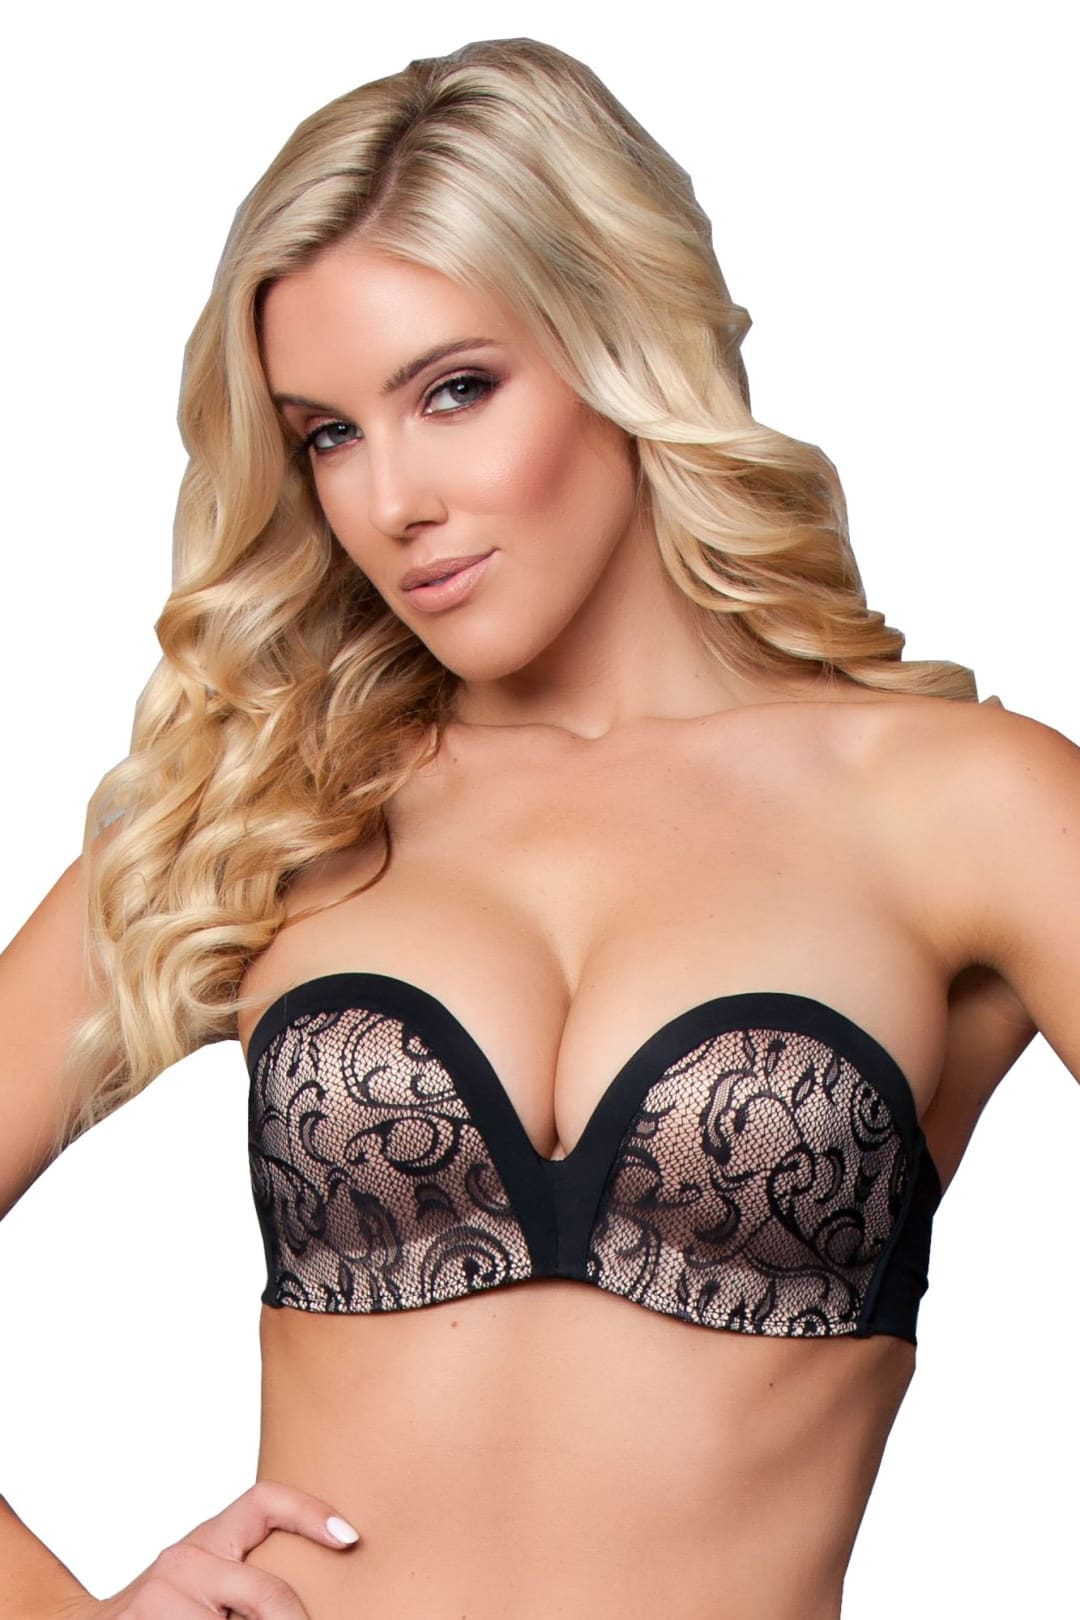 Strapless Push Up Bra - Accessories